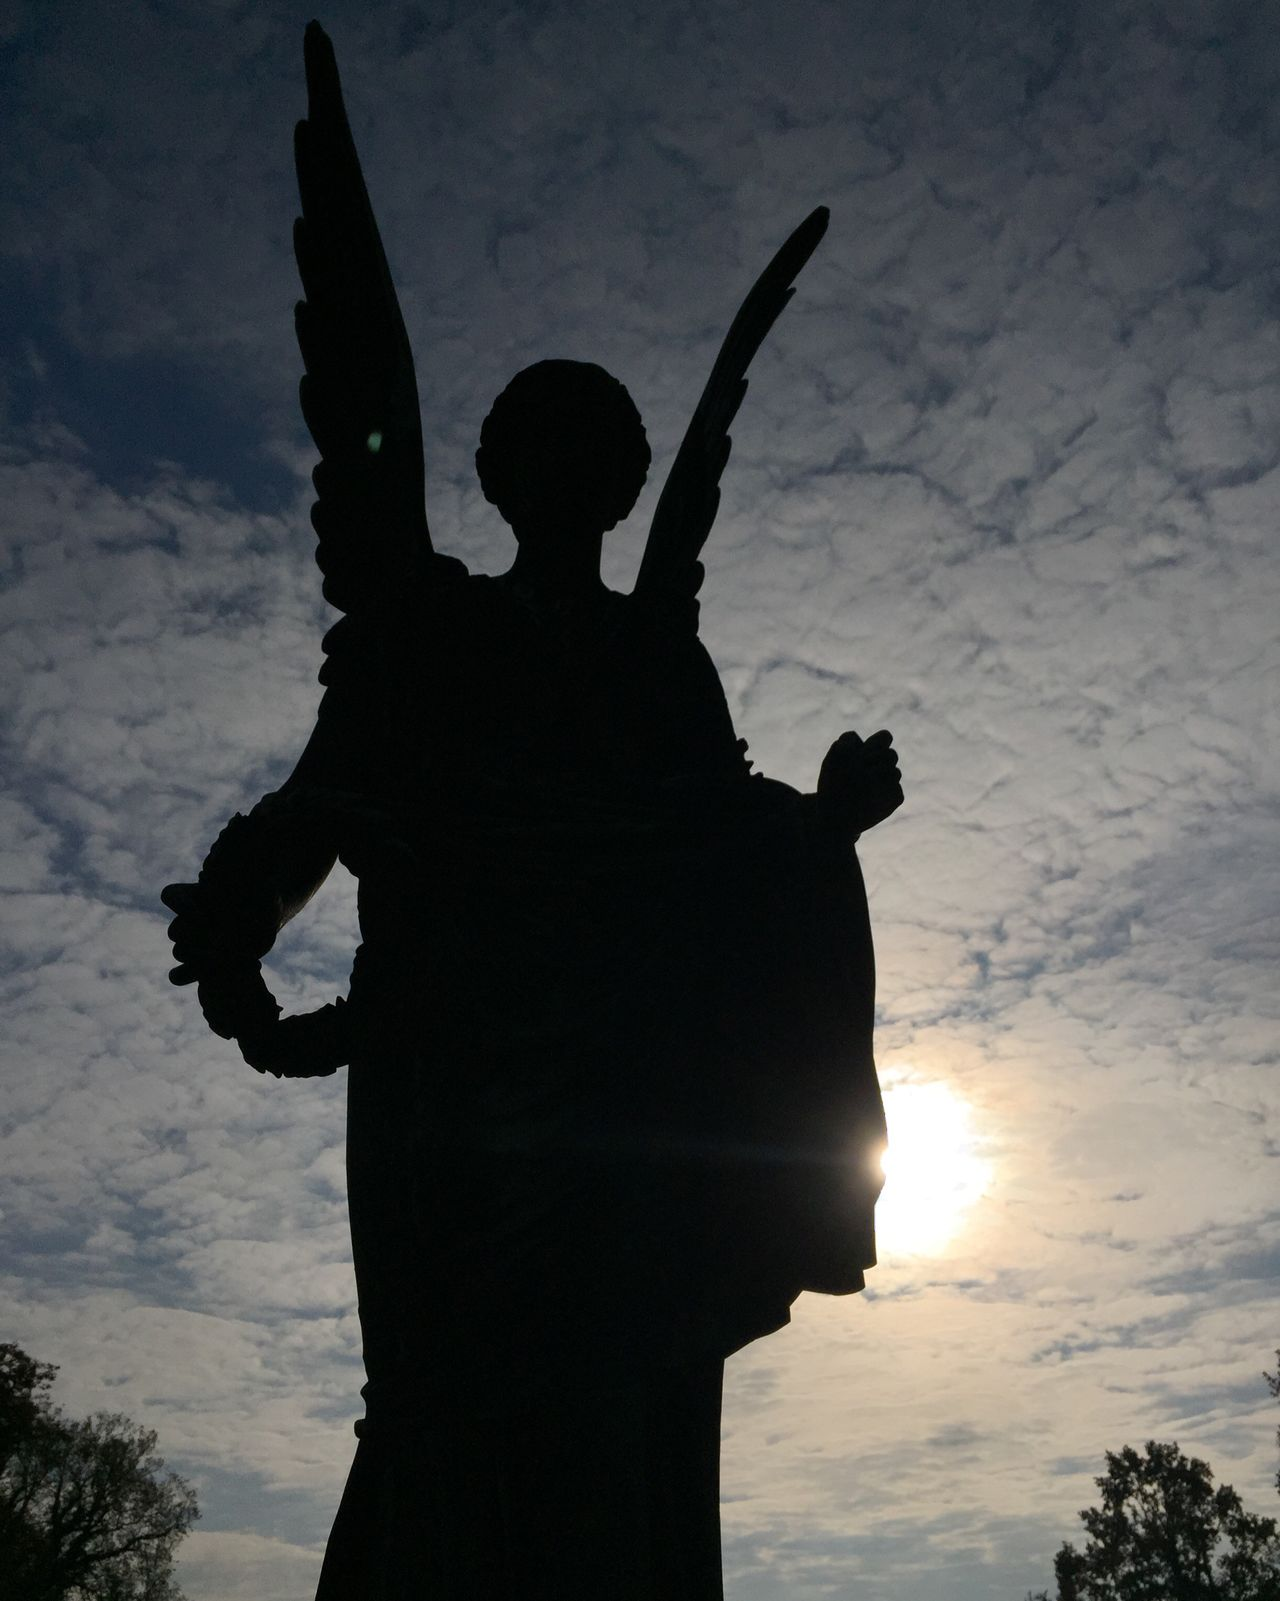 Statue Potsdam Silhouette Sanssouci Park Potsdam Spirituality Grief Angel Goddess Wings Death Love Clouds Protection